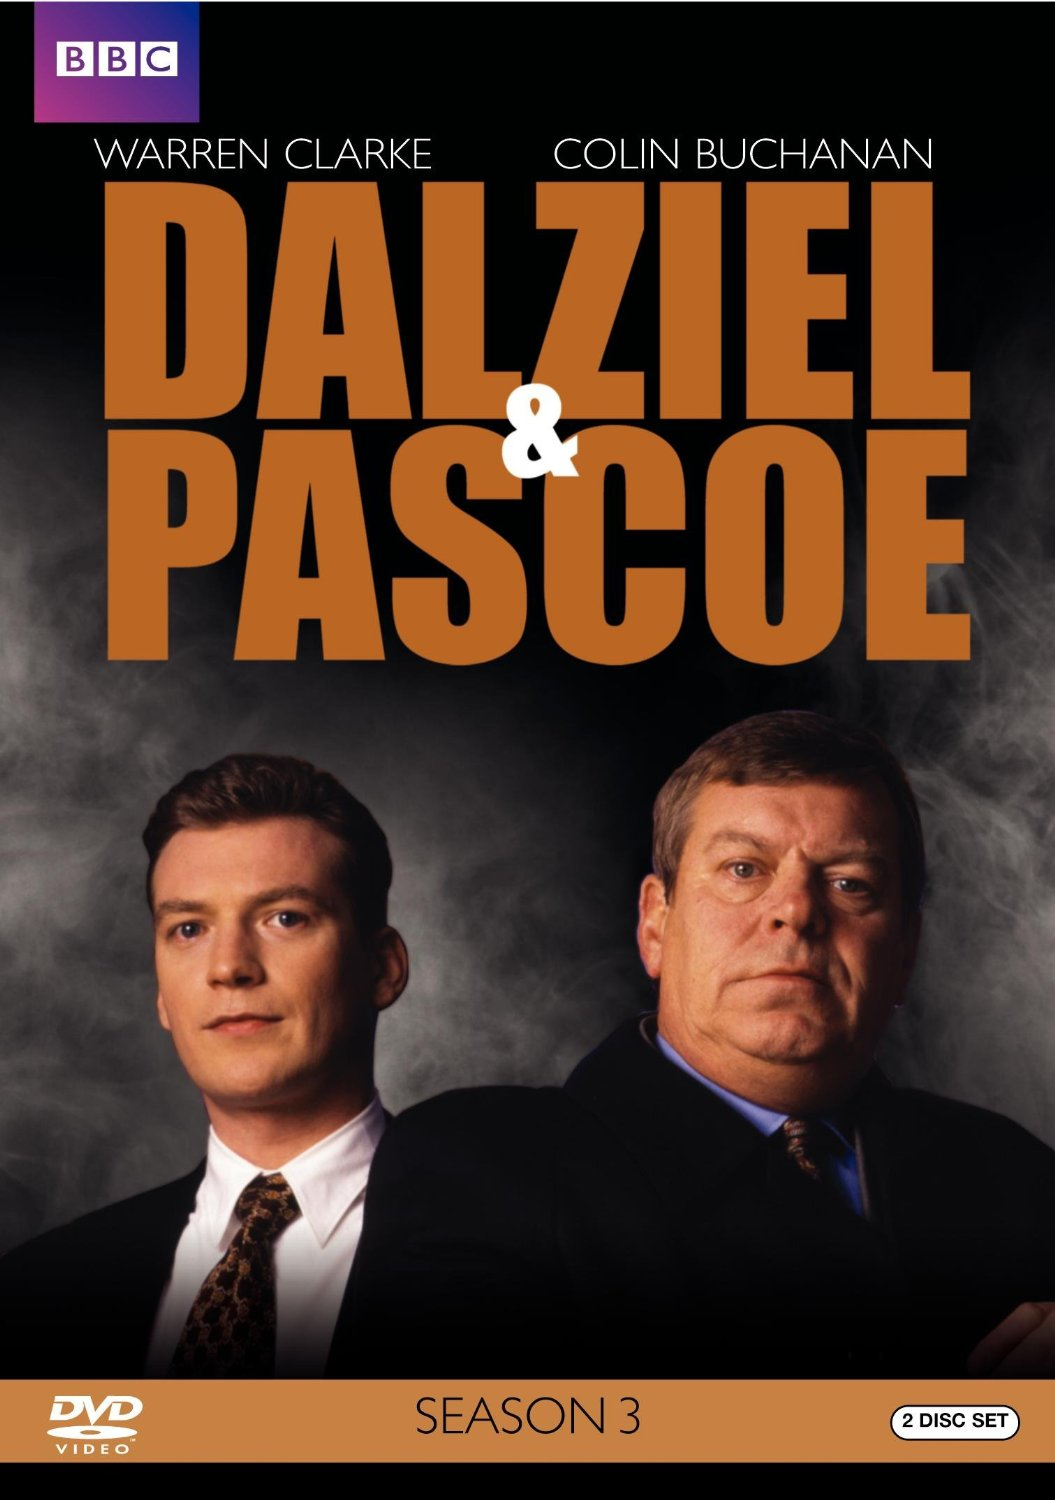 Dalziel And Pascoe: Season 3